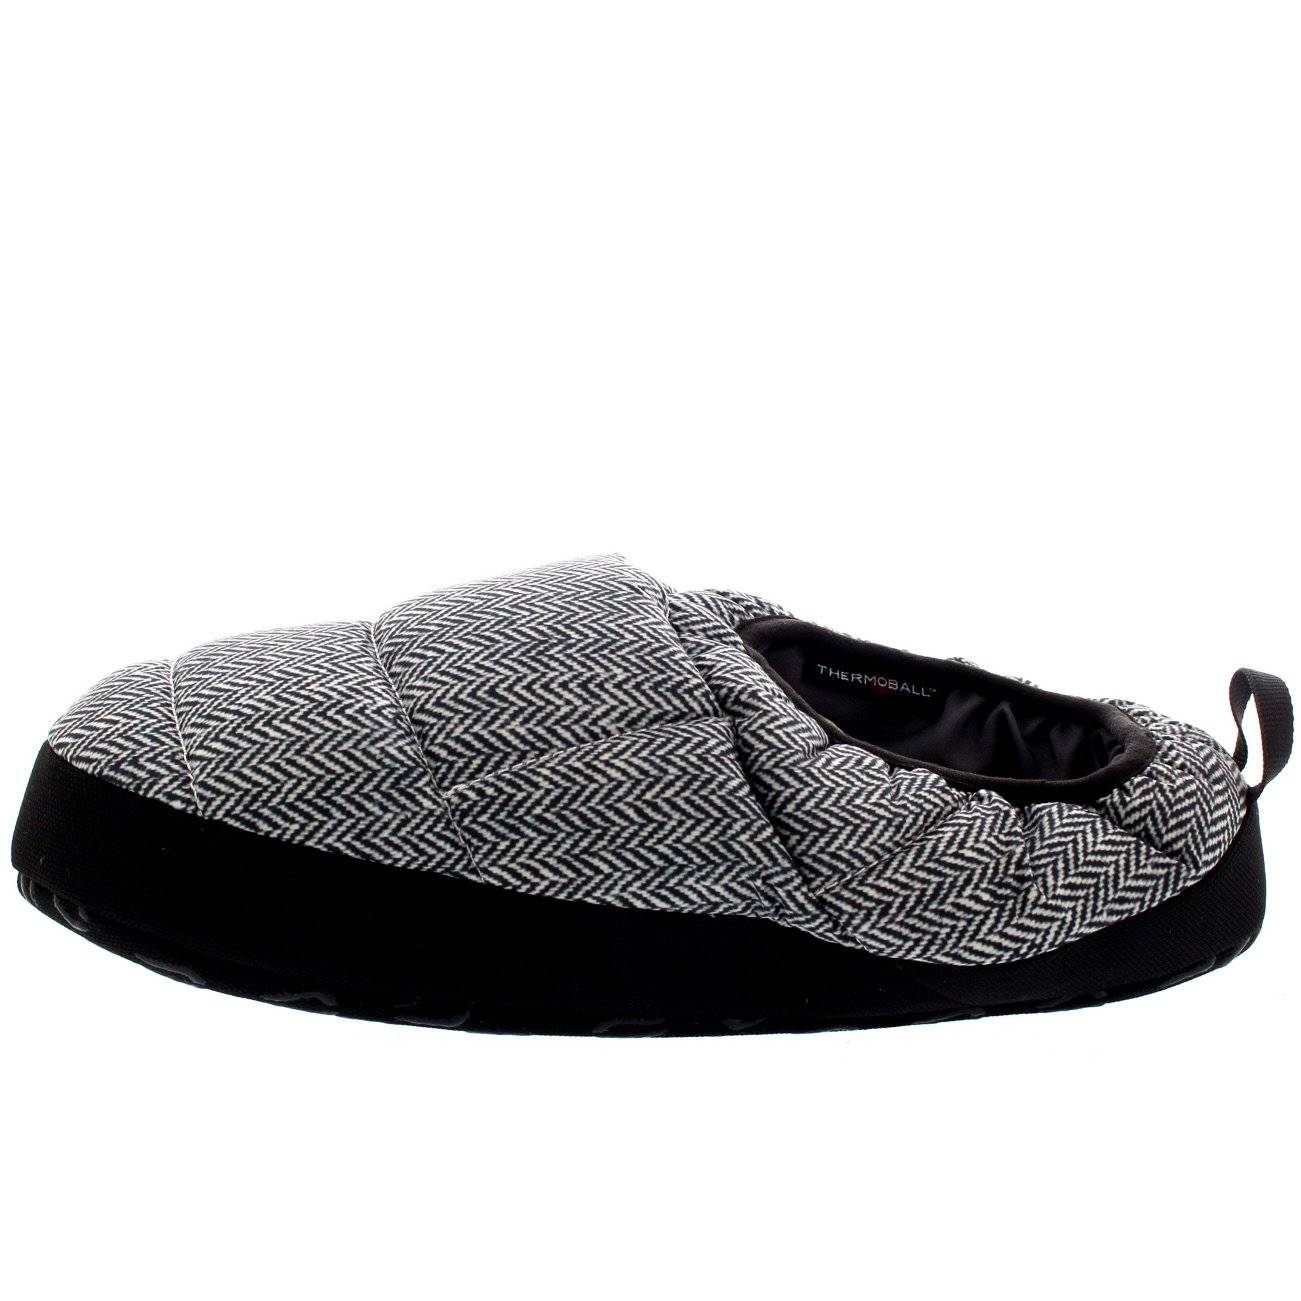 The North Face Mens NSE Tent Mule III Thermal Warm Winter Mule Slippers - Black/White - 8-9.5 by The North Face (Image #2)